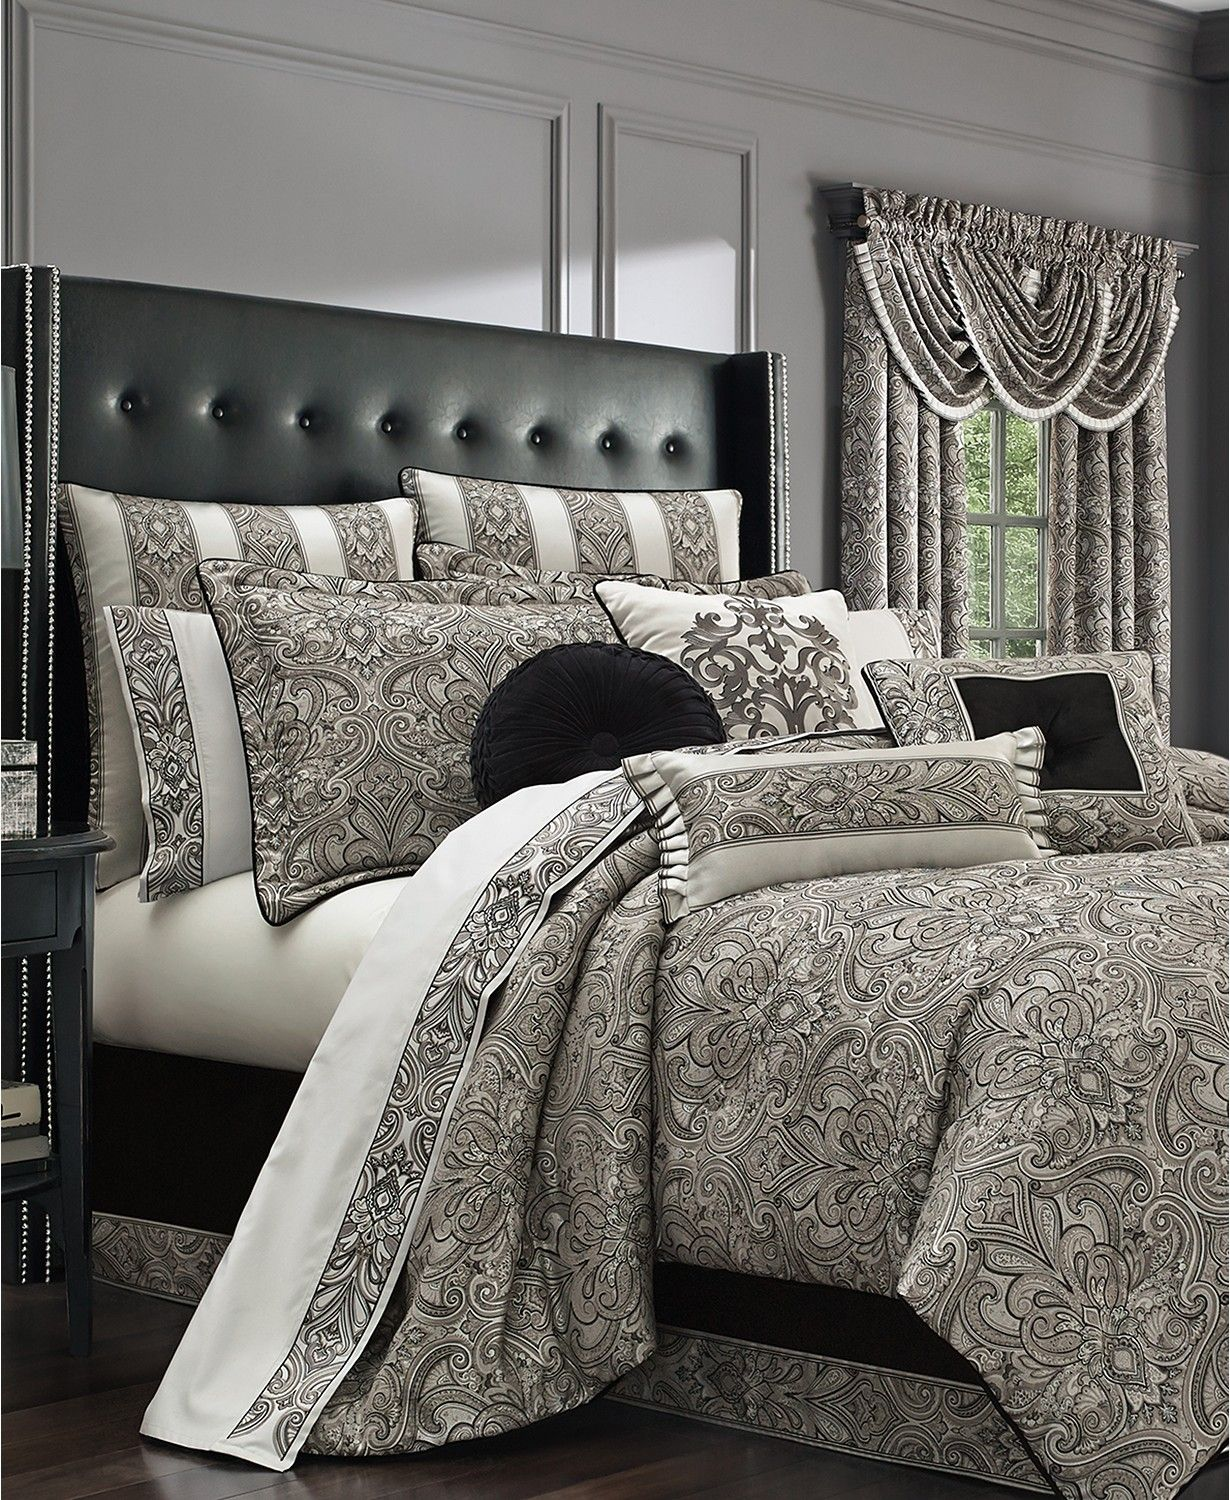 Magnified Main Image Bed Linens Luxury Comforter Sets Luxury Bedding Sets